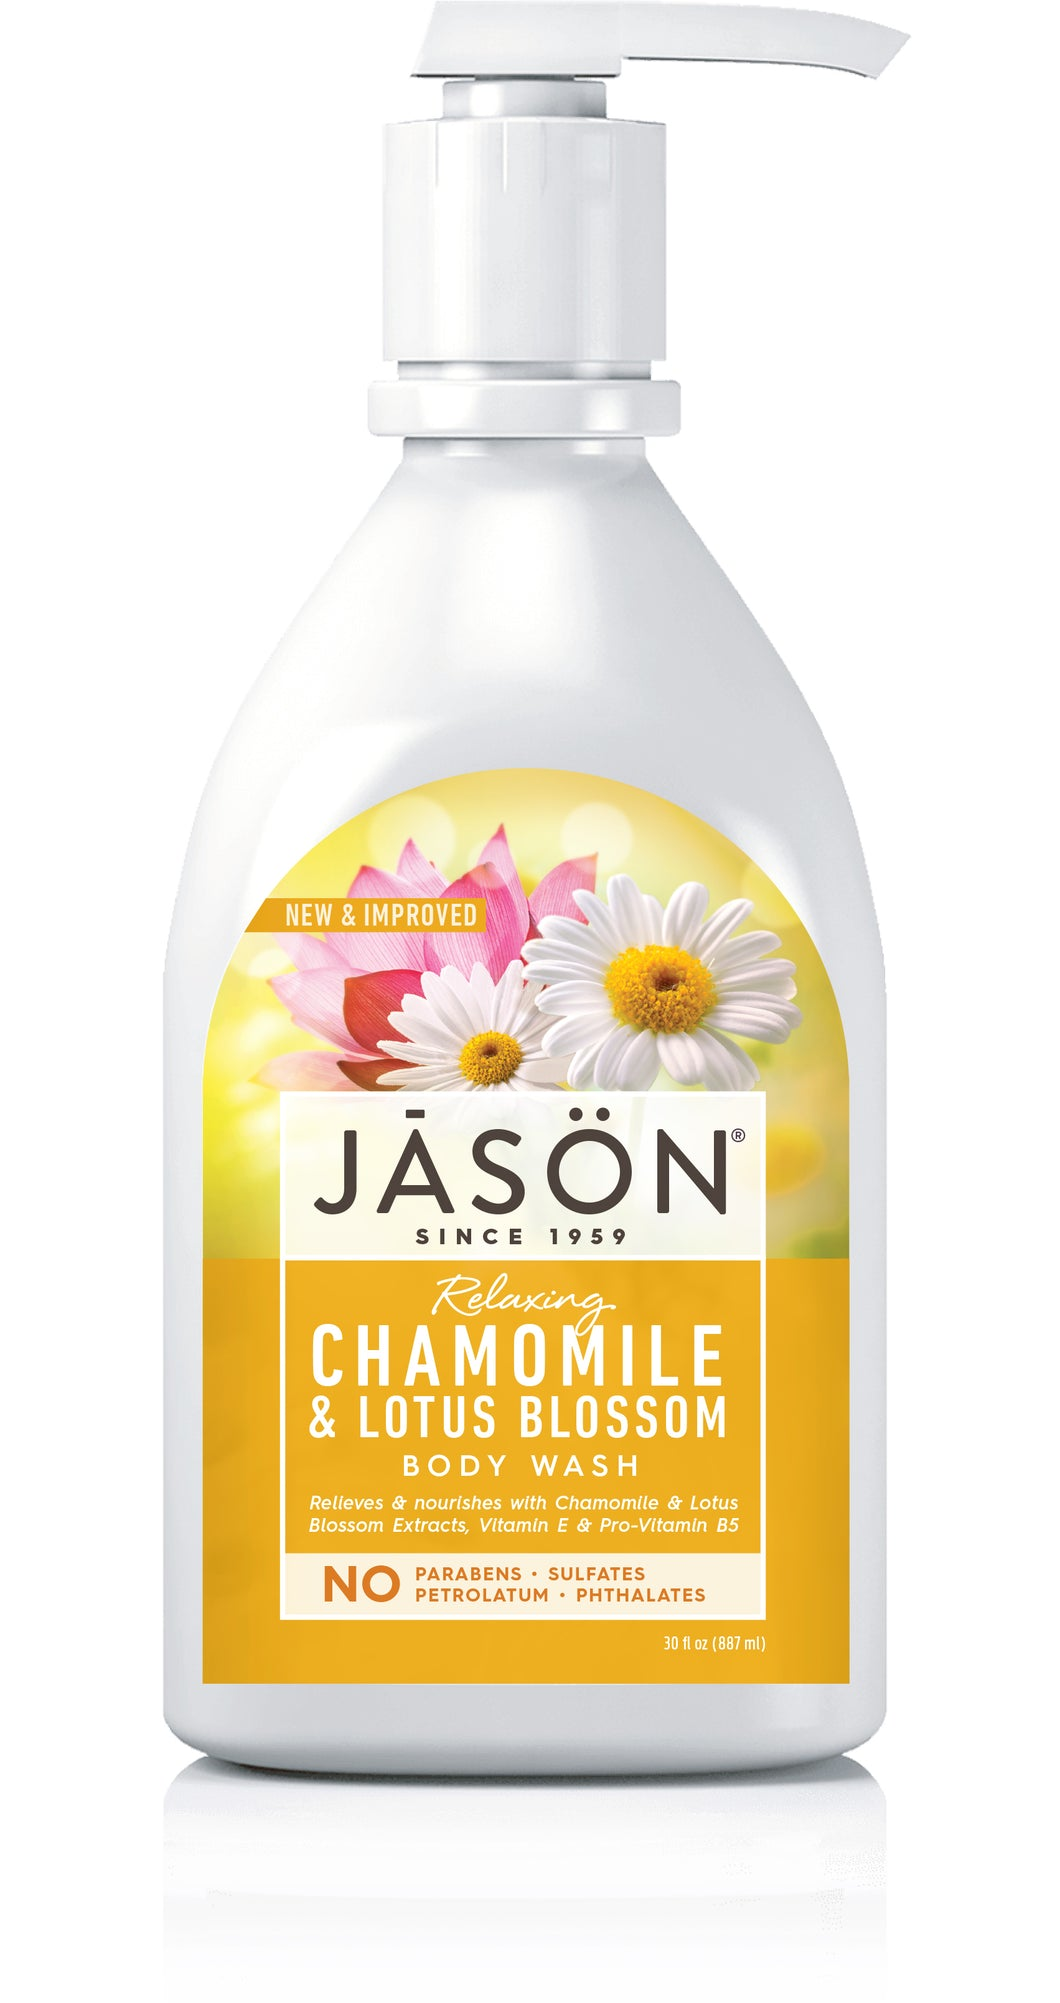 Relaxing Chamomile & Lotus Blossom Body Wash